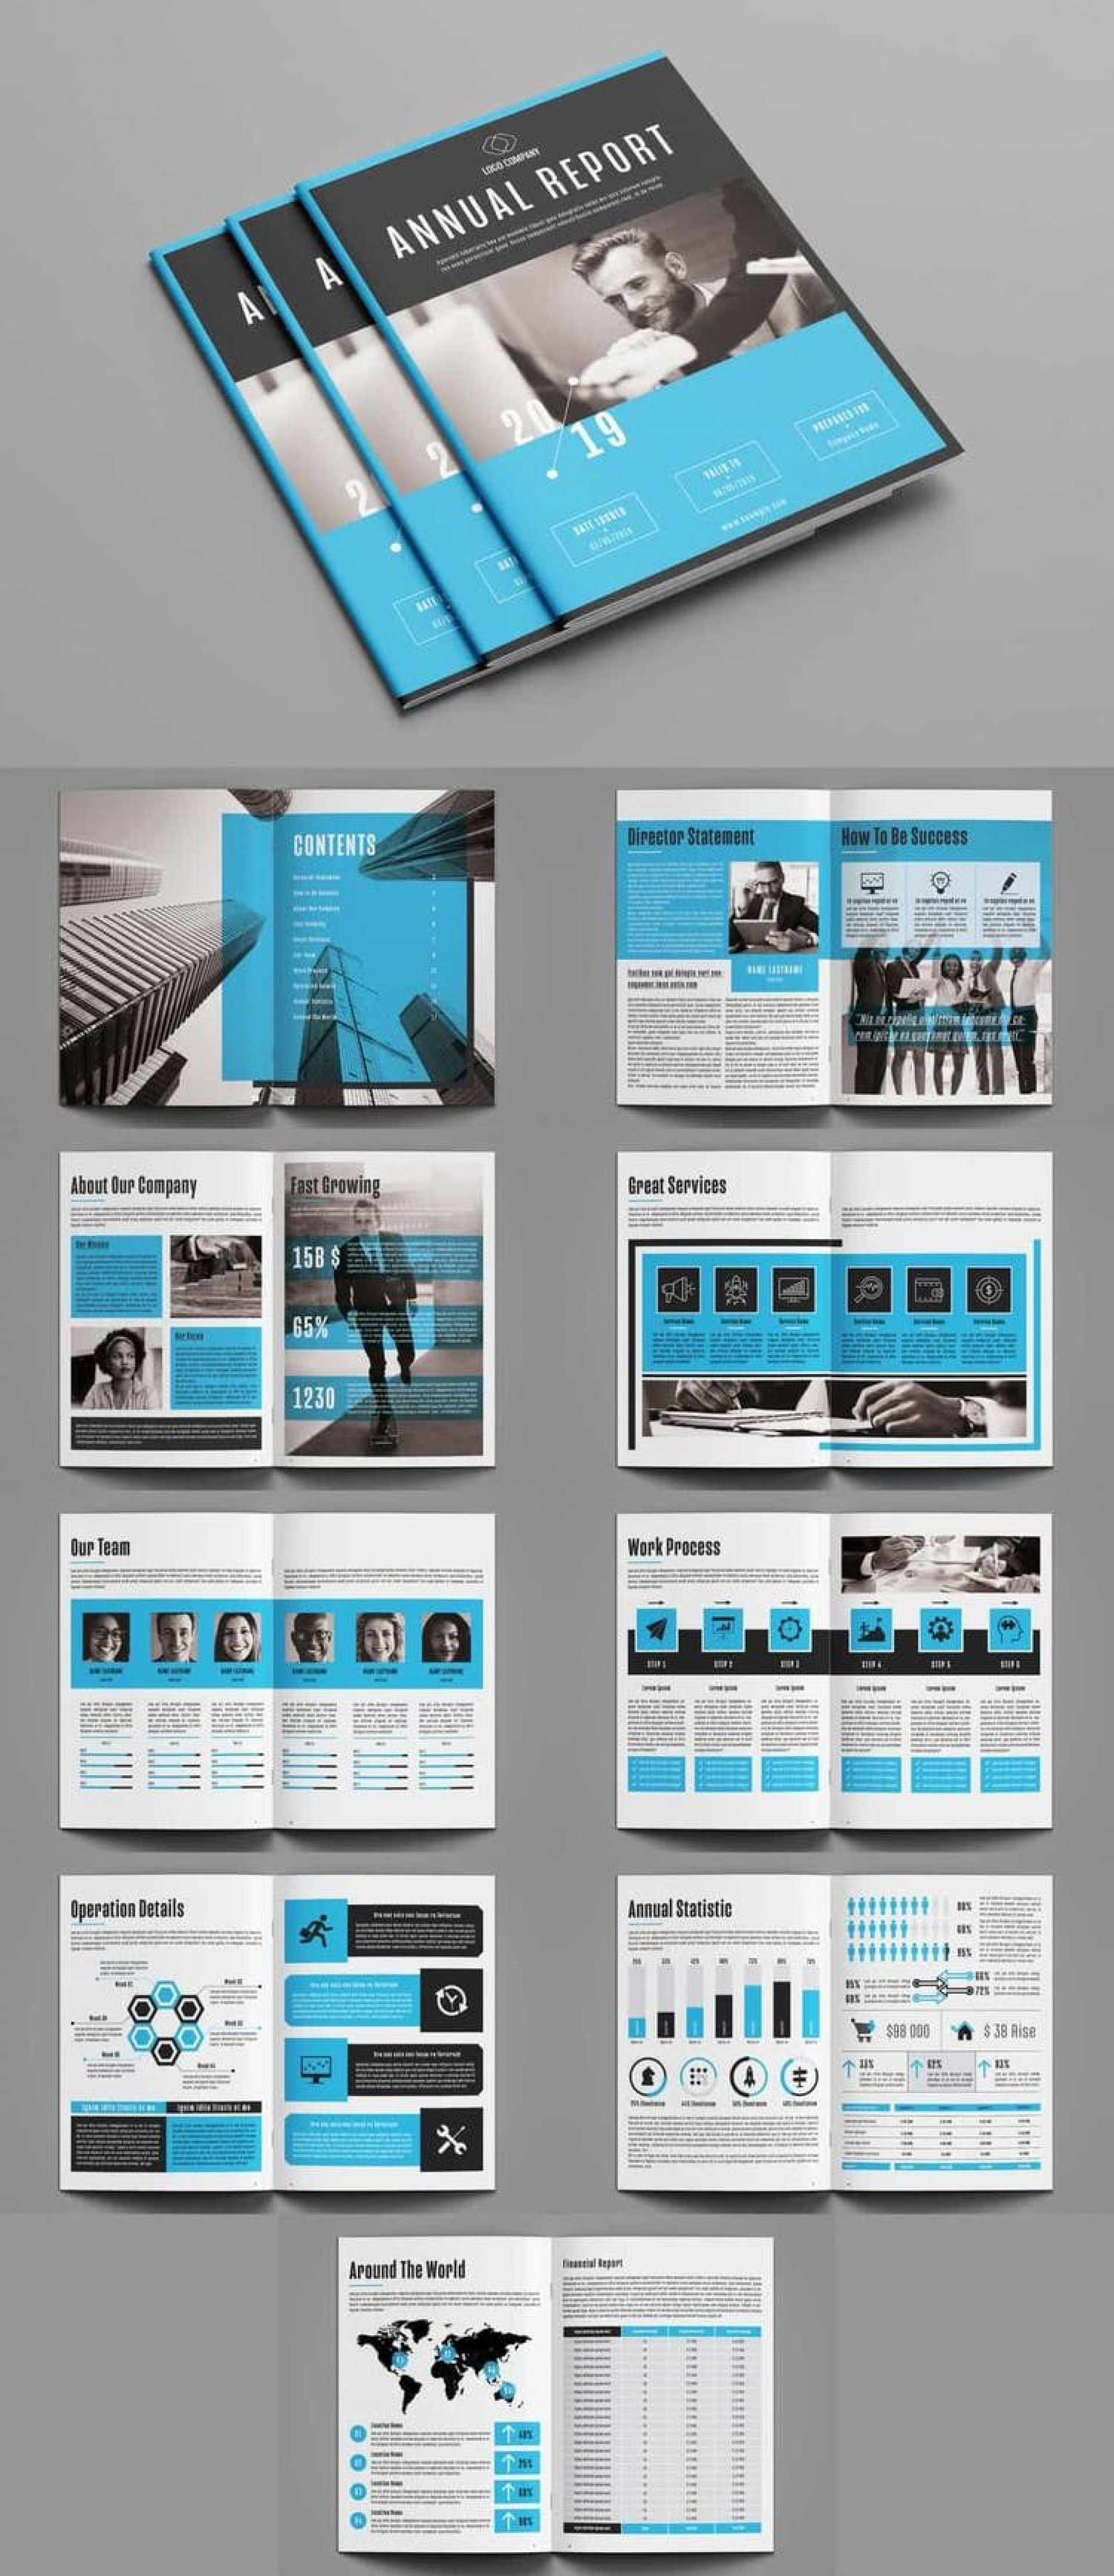 004 Shocking Annual Report Design Template Idea  Templates Word Timeles Free Download In1920